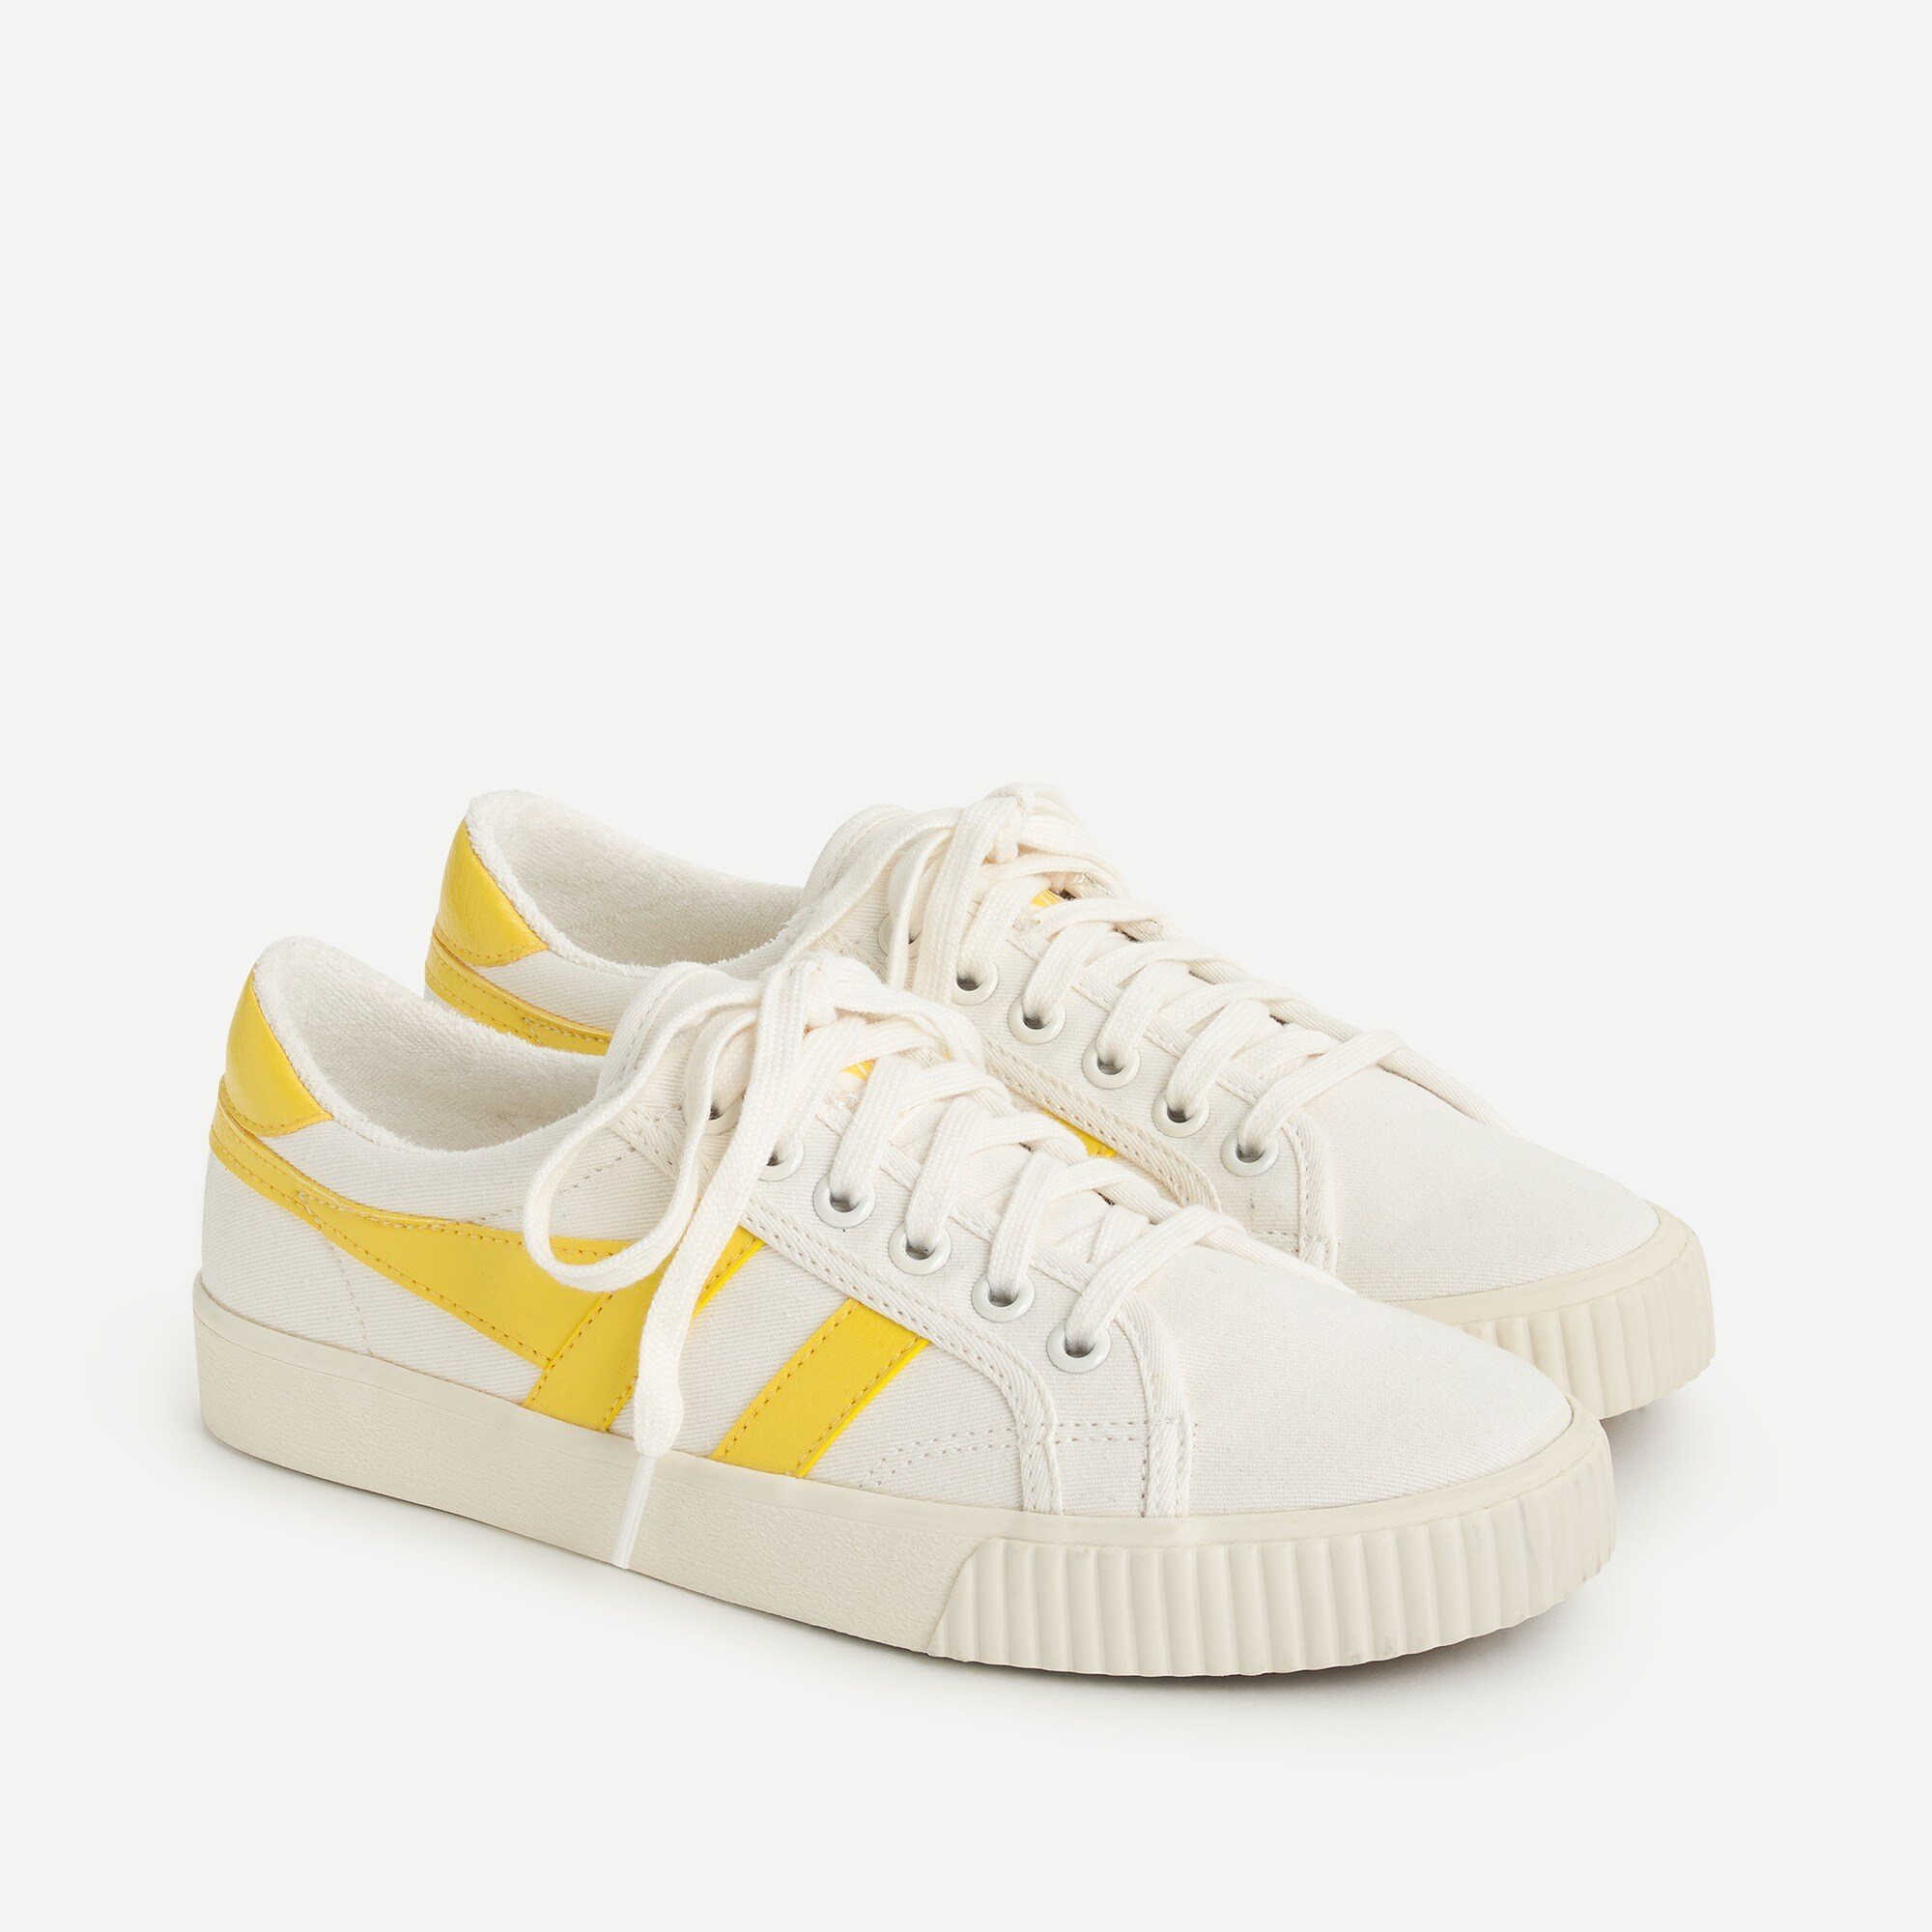 Gola® for J.Crew Mark Cox Tennis sneakers women j.crew in good company c